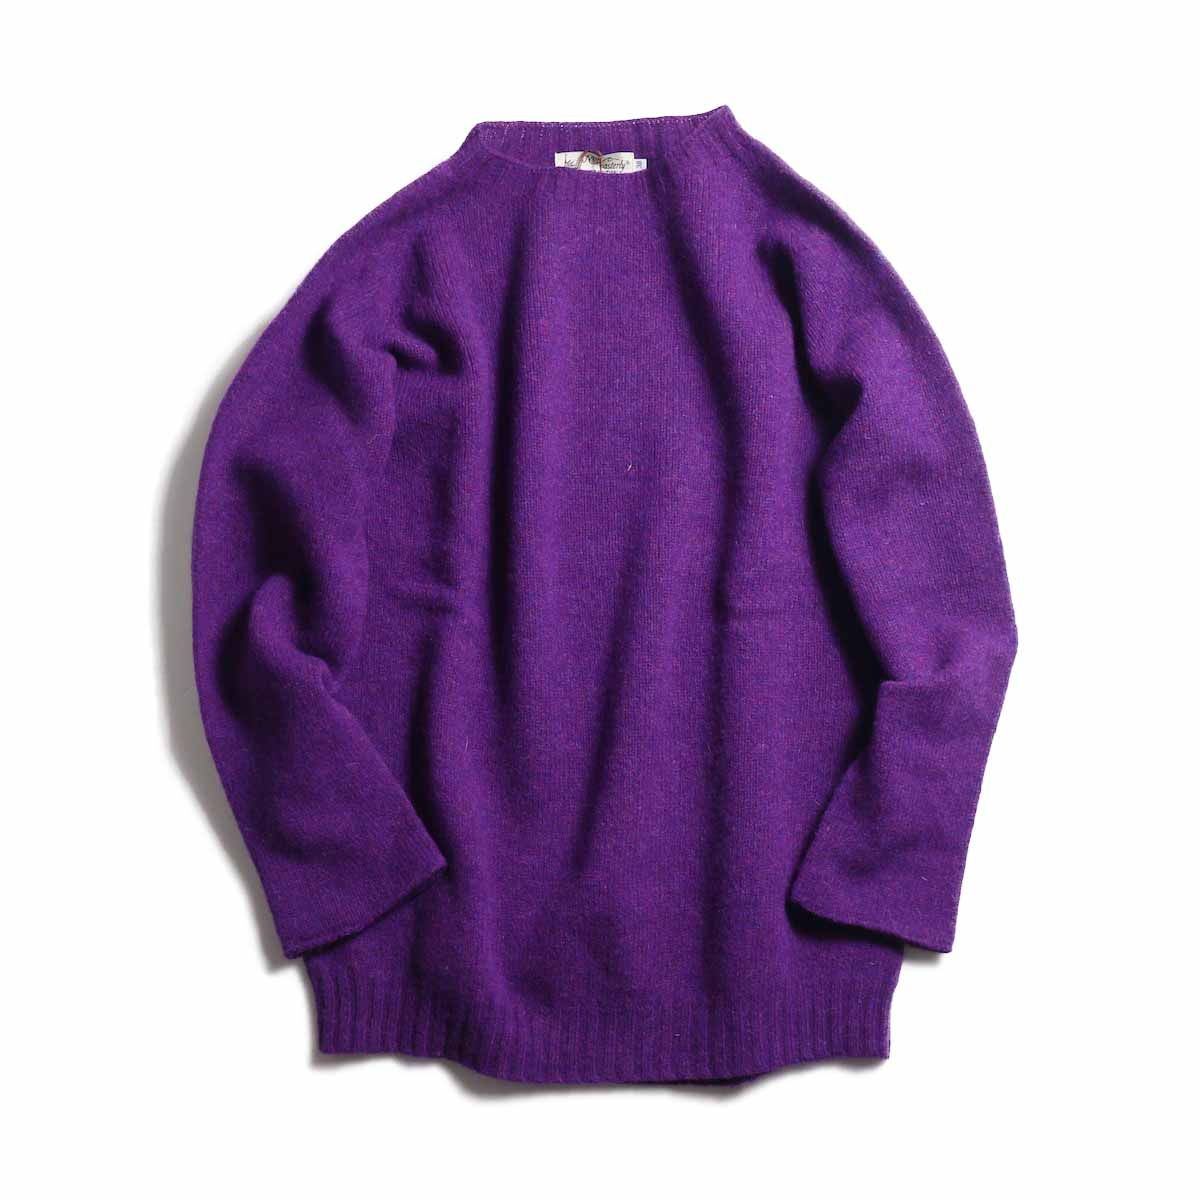 NOR'EASTERLY / L/S Crew Neck Knit -PURPLE